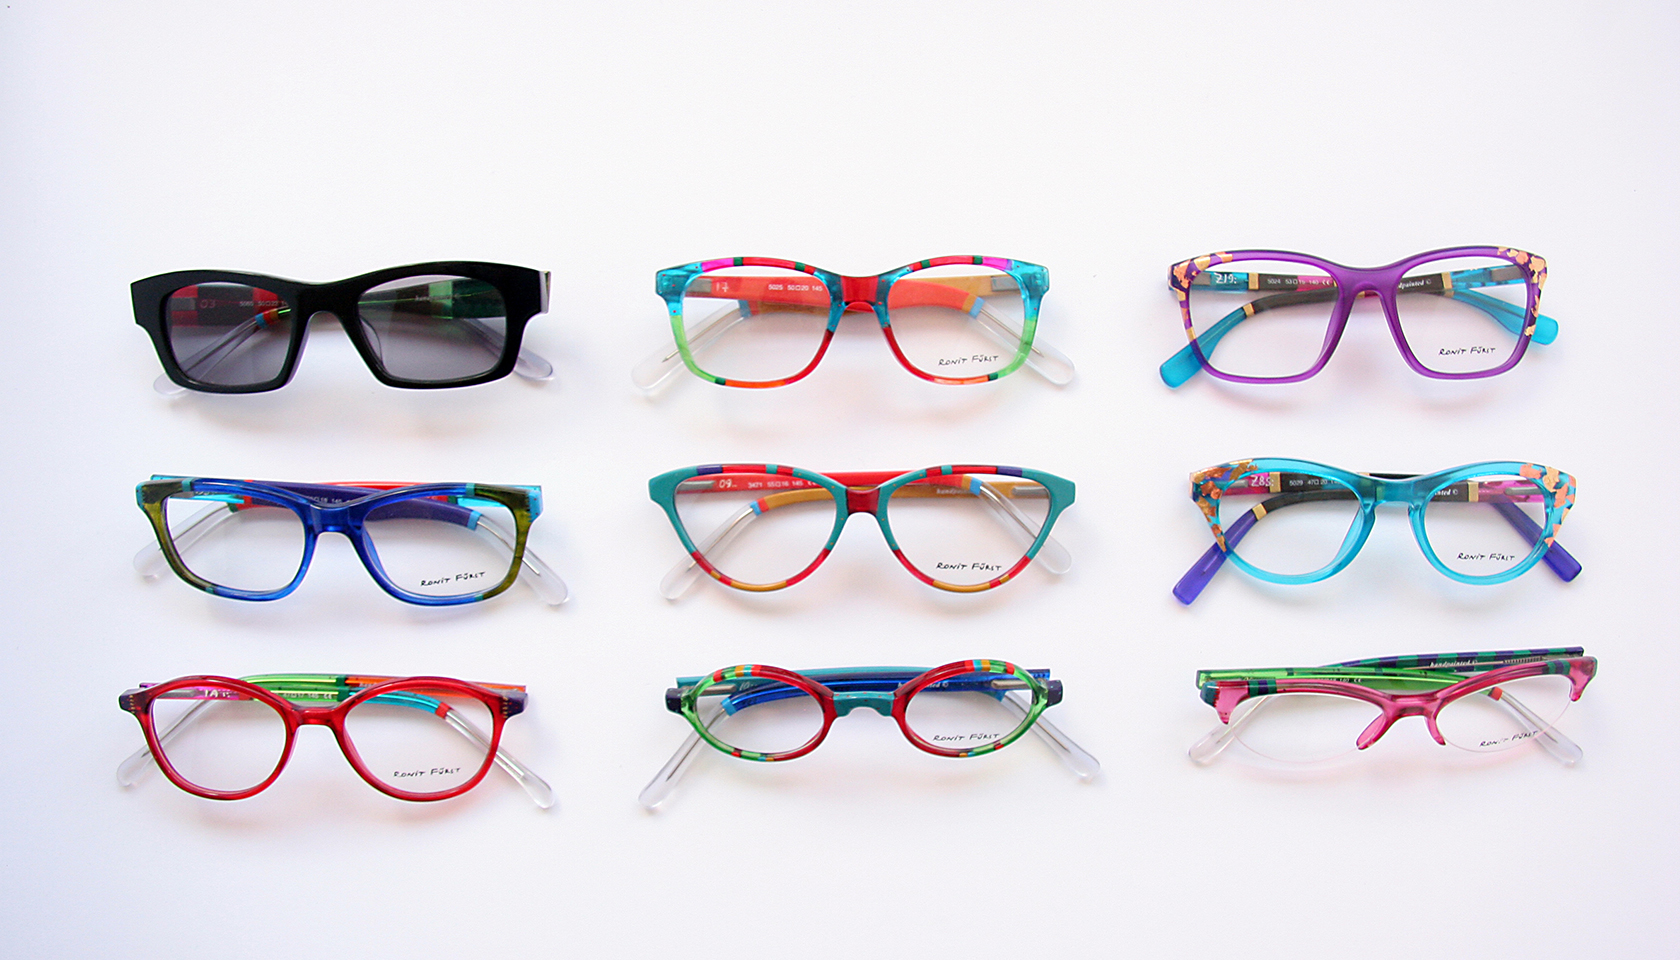 Ronit Furst Eyewear at at Hillcrest Optical